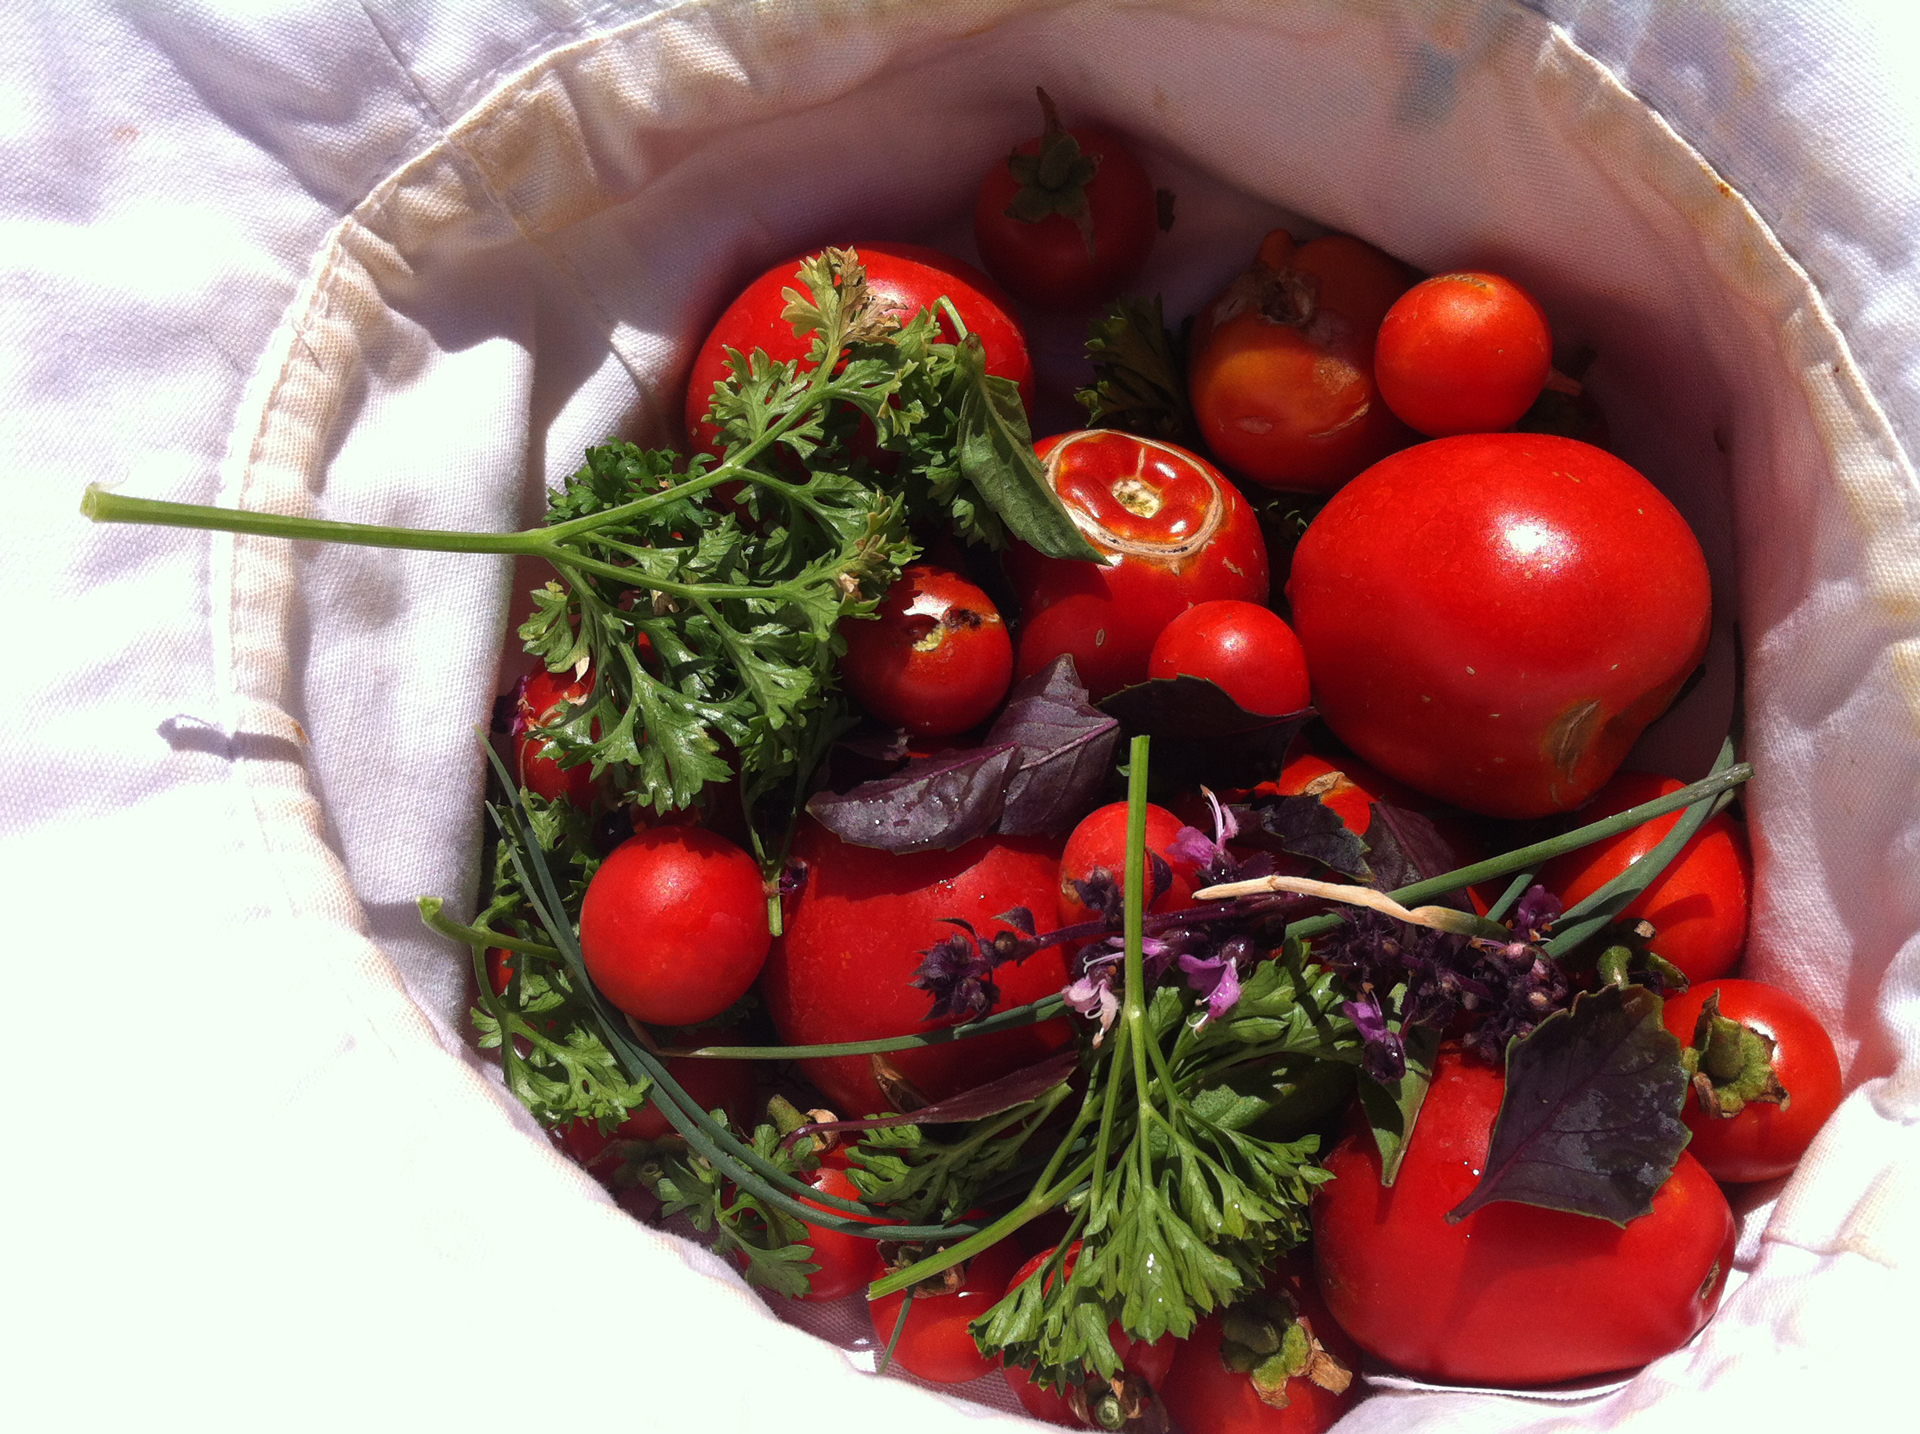 wiluna_12_We-used-the-tomatoes,-with-fresh-parsley-and-basil-to-make-a-tomato-salad.